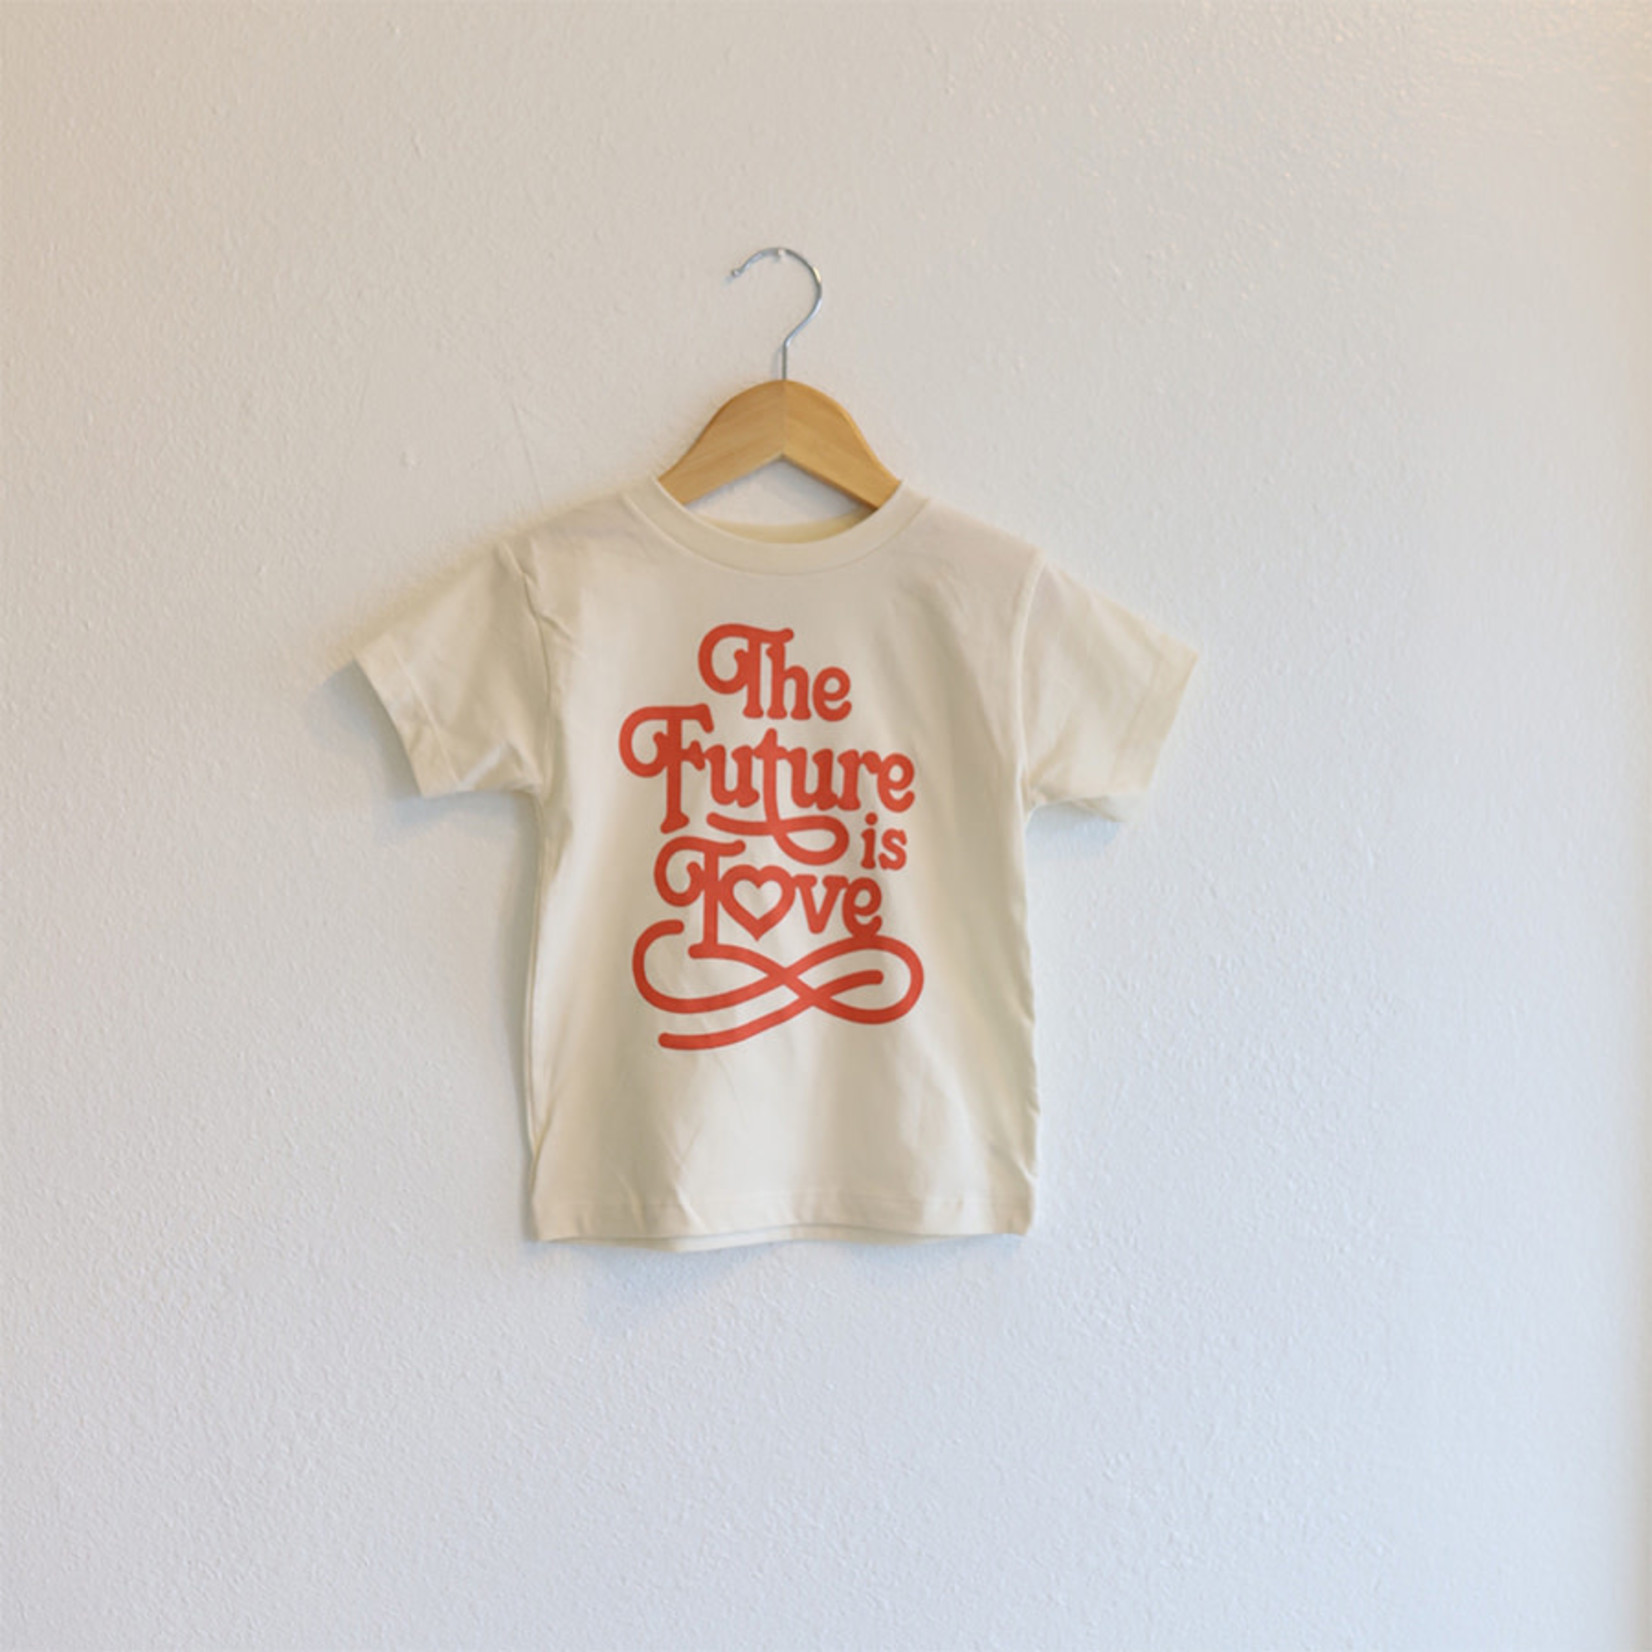 Polished Prints The Future is Love Toddler Tee